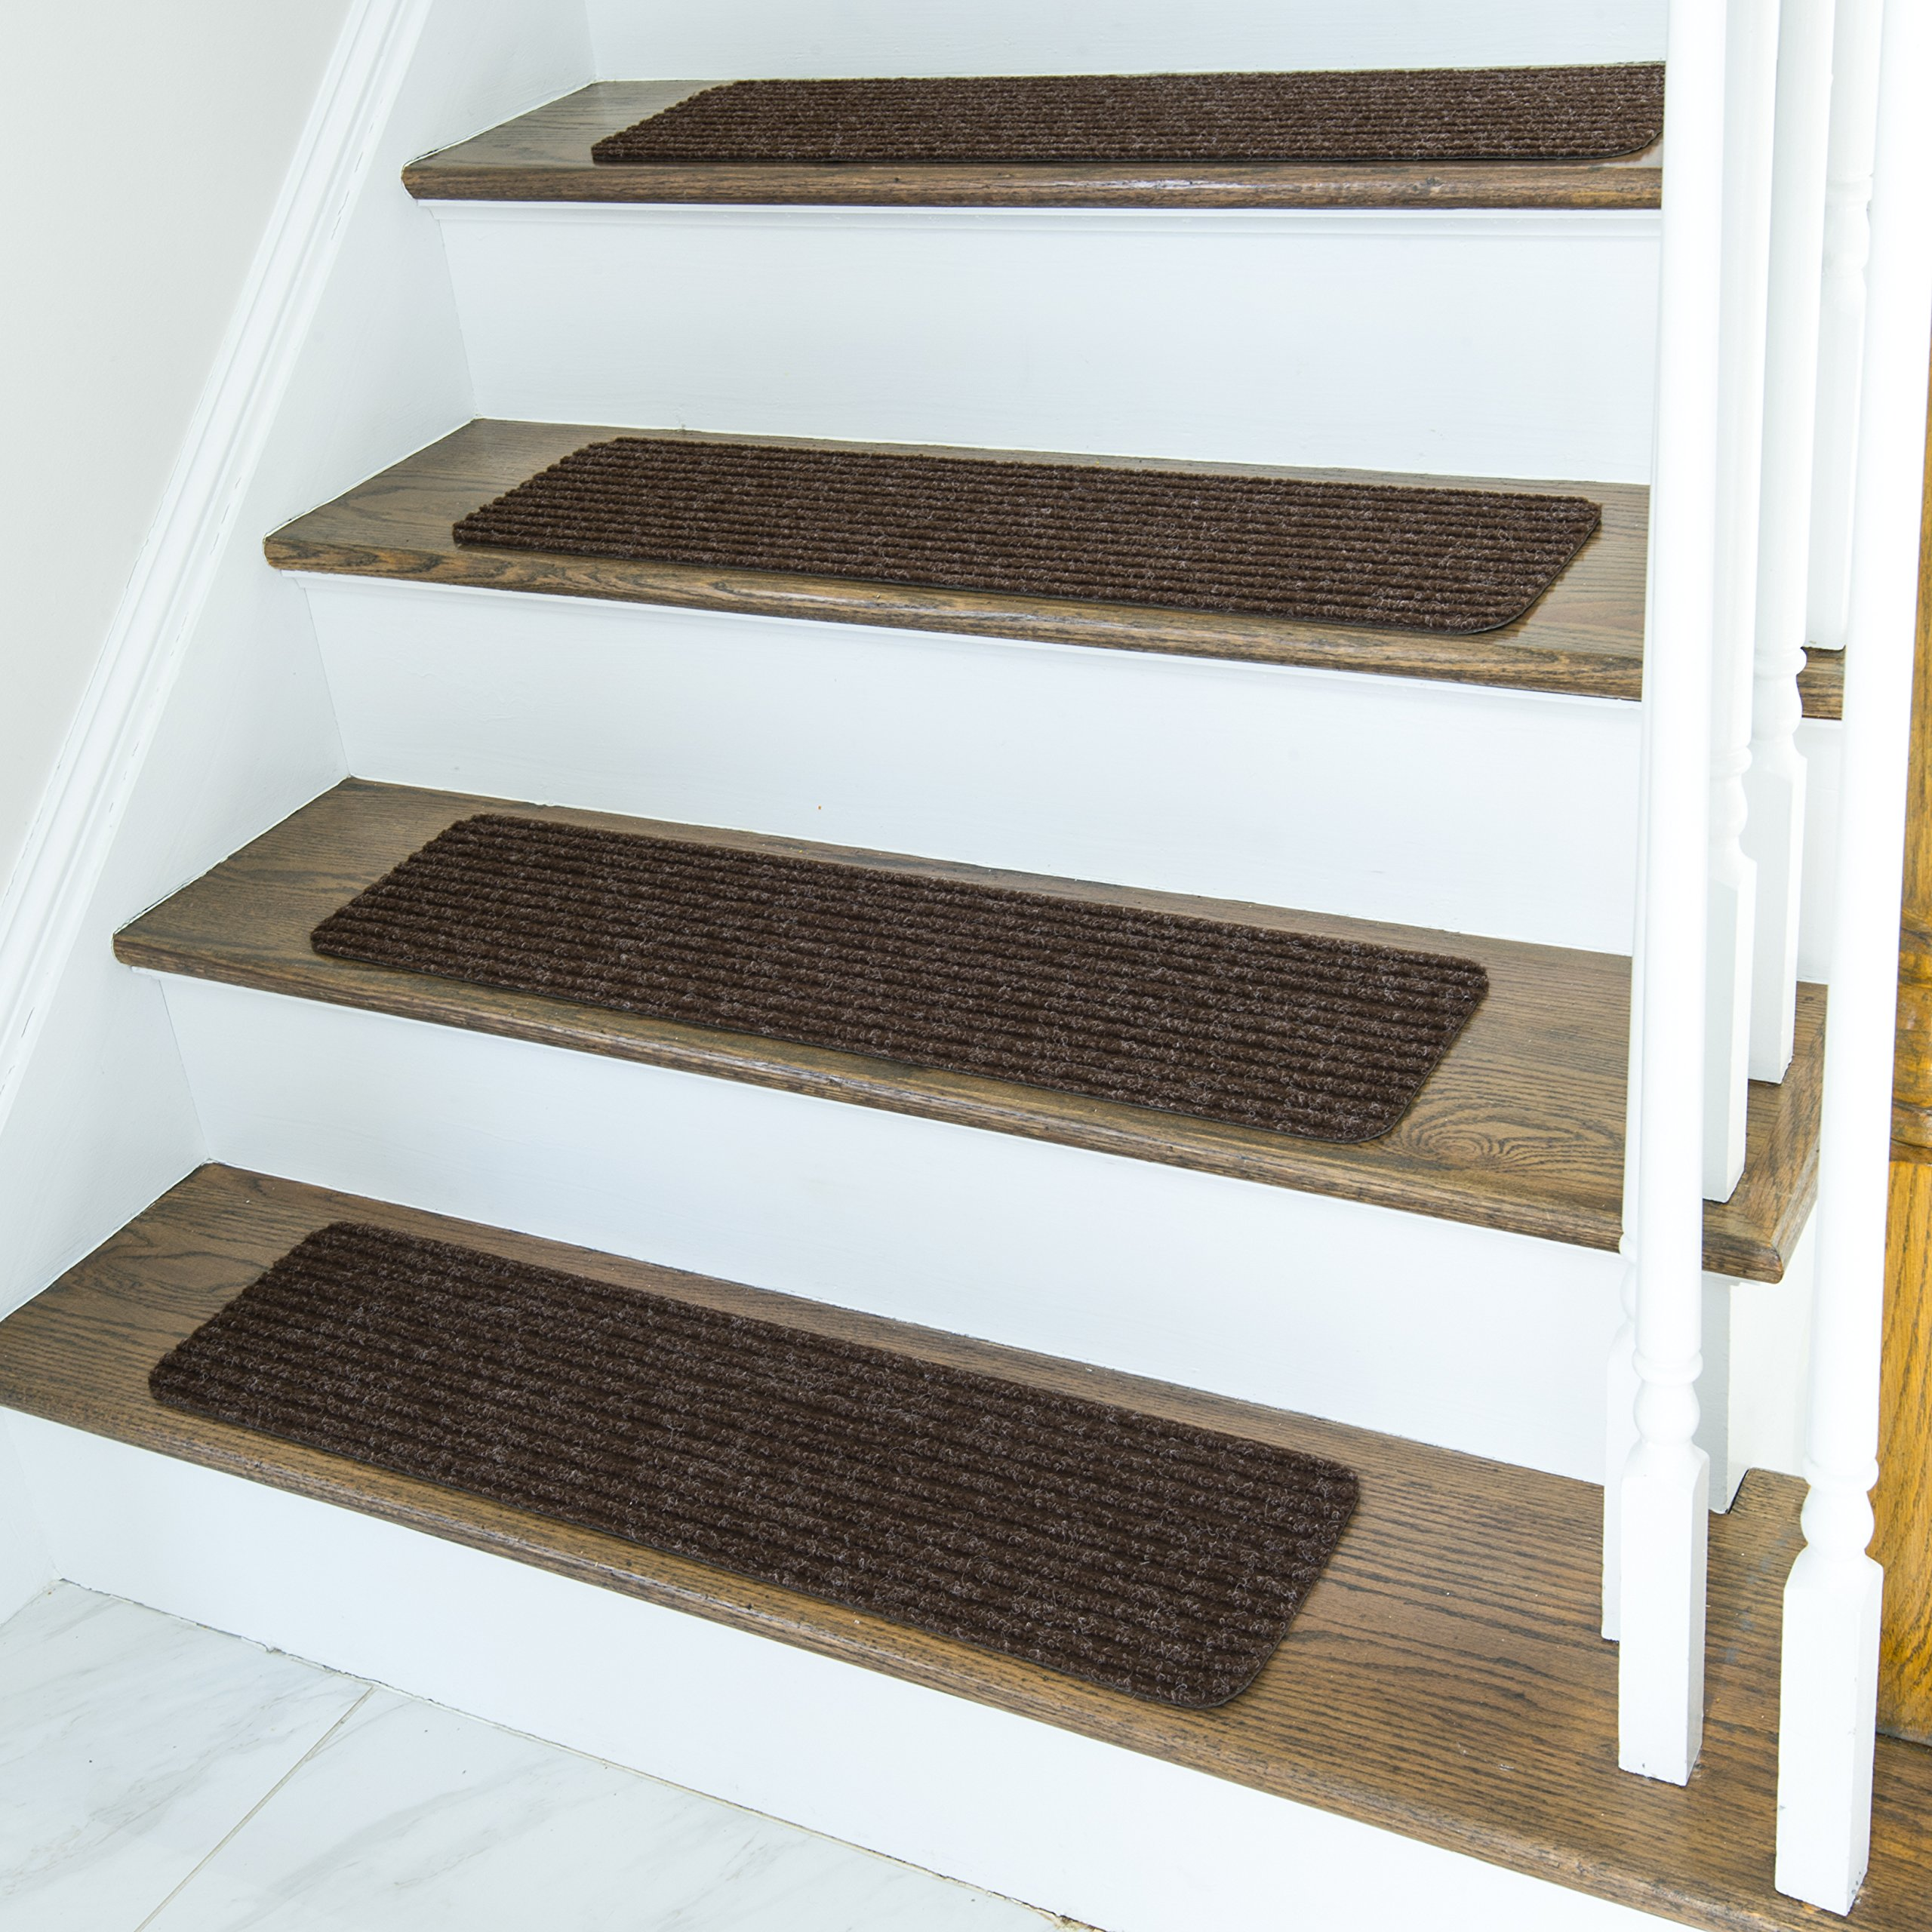 Non slip carpet stair treads double sided tape set of - Non skid treads for exterior stairs ...